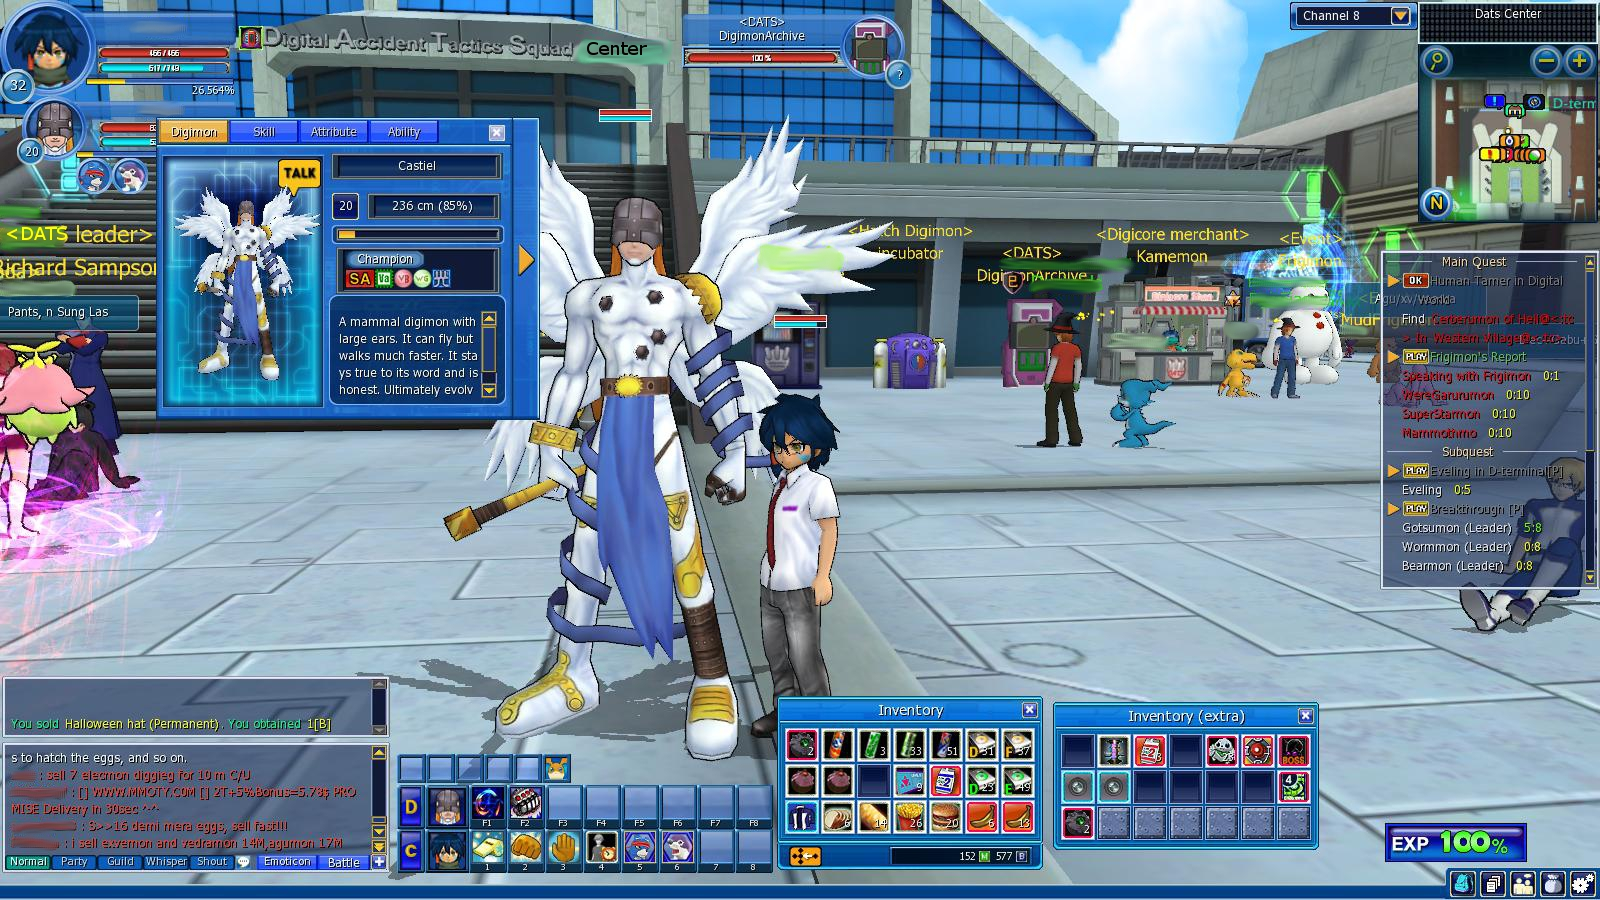 digimon world 2 digimon list